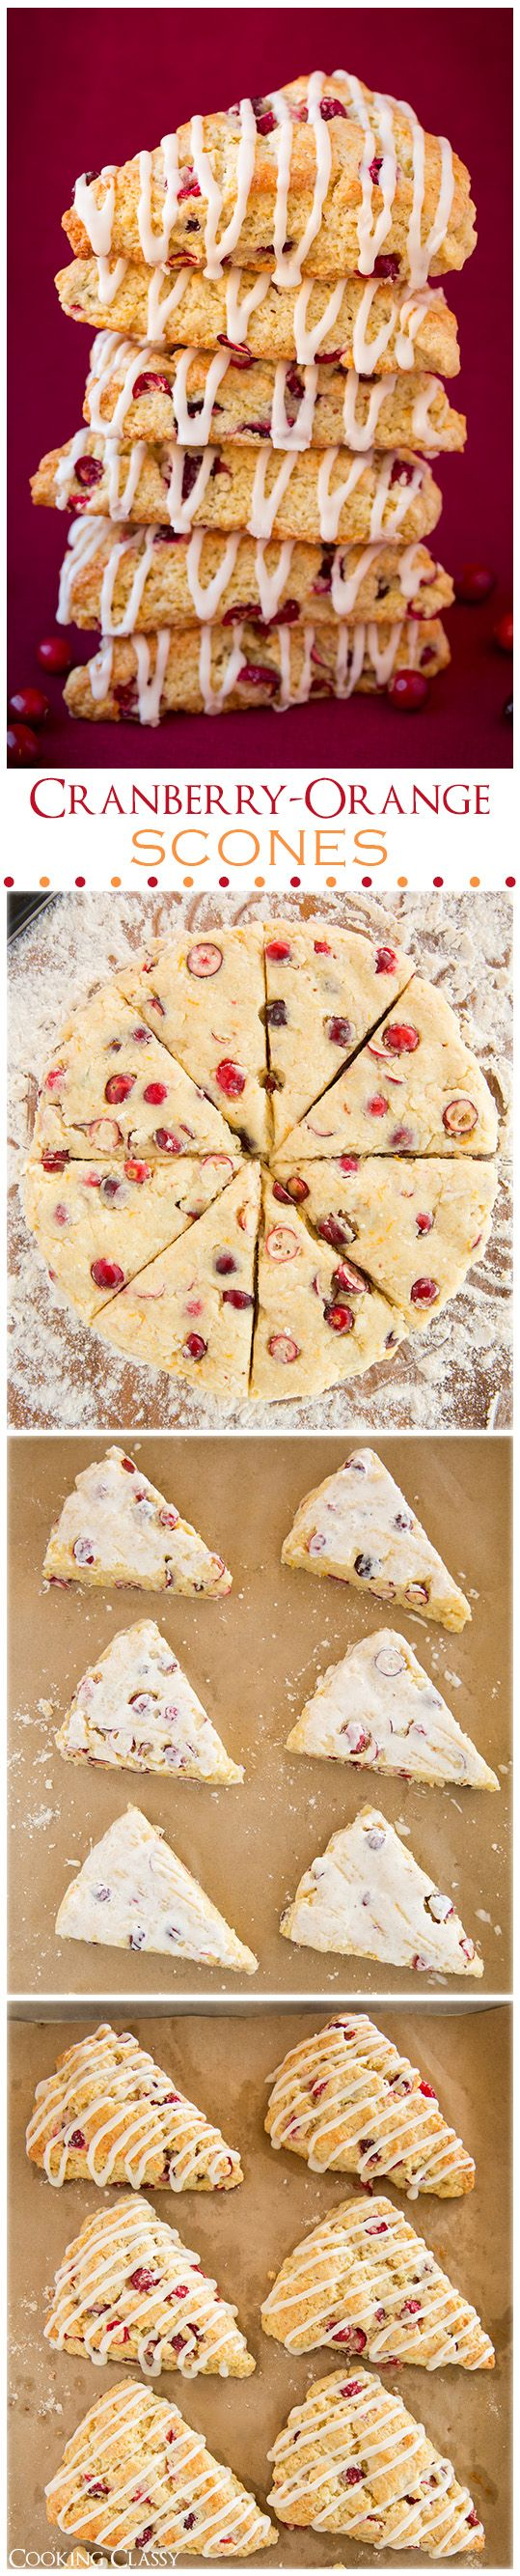 Cranberry Orange Scones with Vanilla Cream Glaze - These are so moist and full of flavor! Perfect for the season!